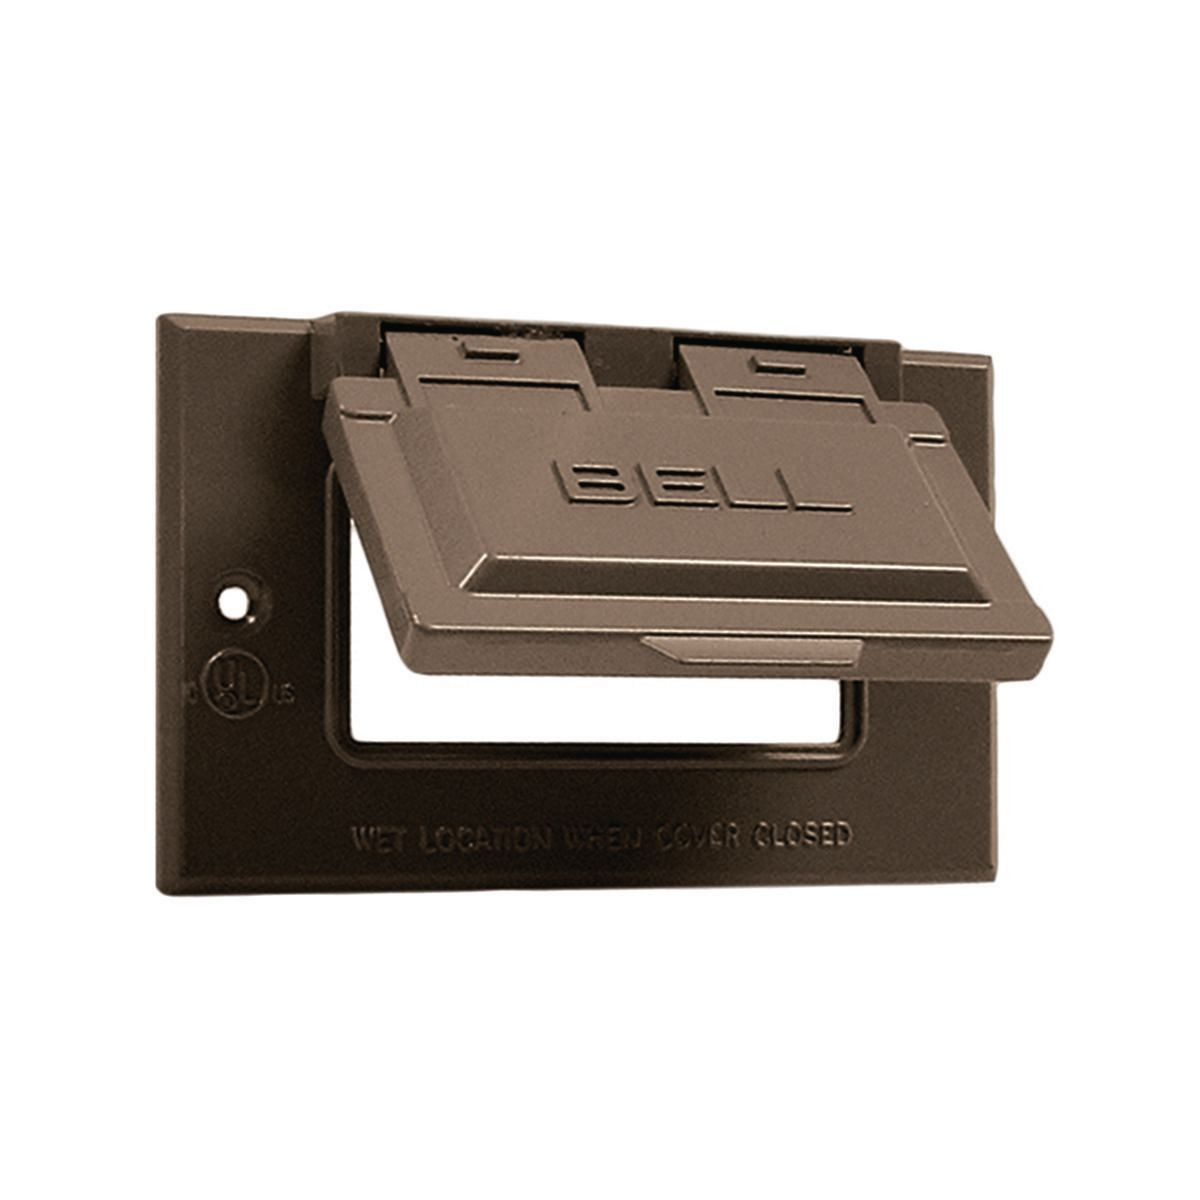 Hubbell-Raco 5101-2 BELL Rayntite Weatherproof Flip Cover